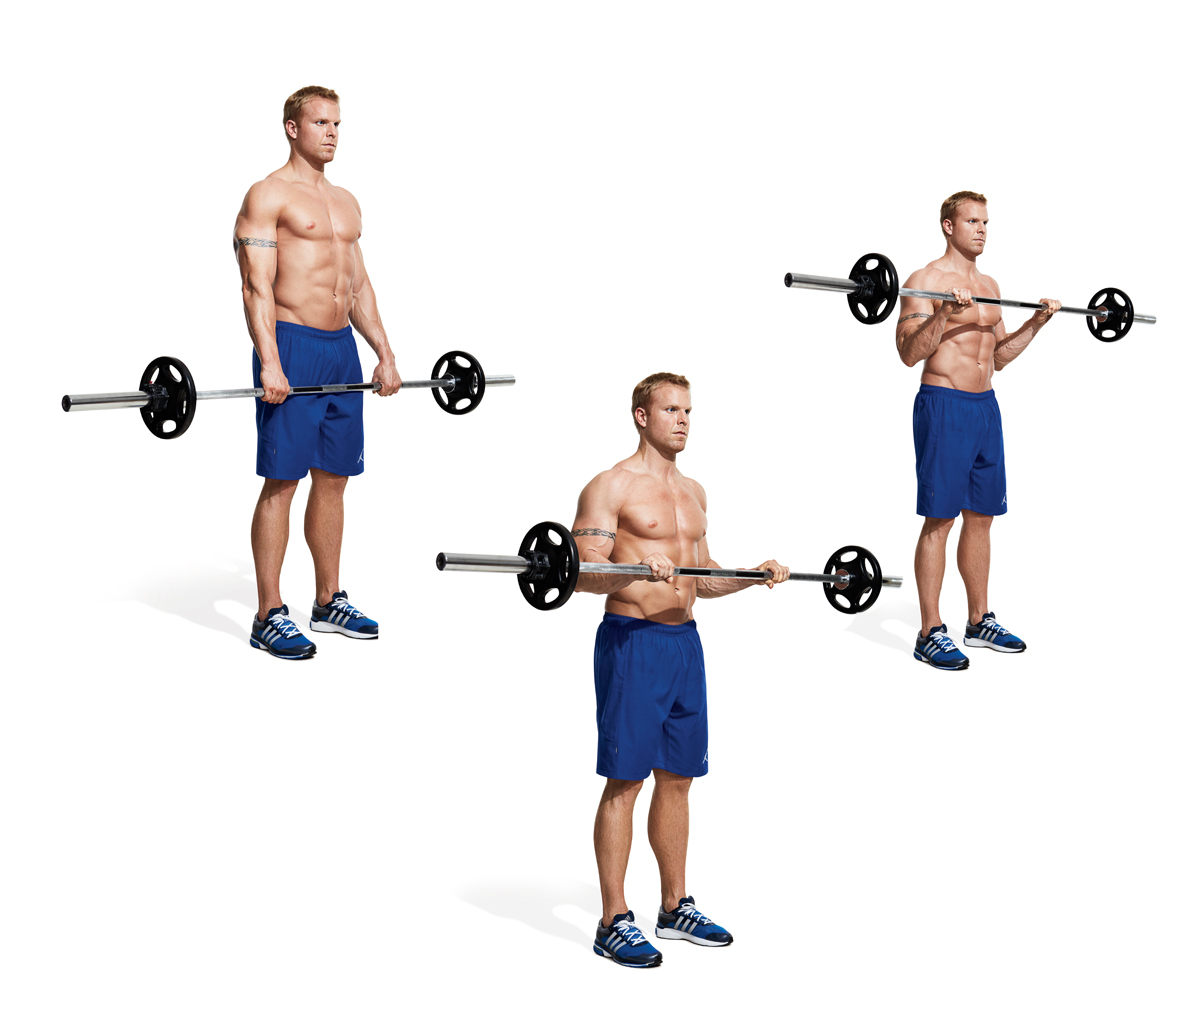 Reverse Curl 21 Video - Watch Proper Form, Get Tips & More ...